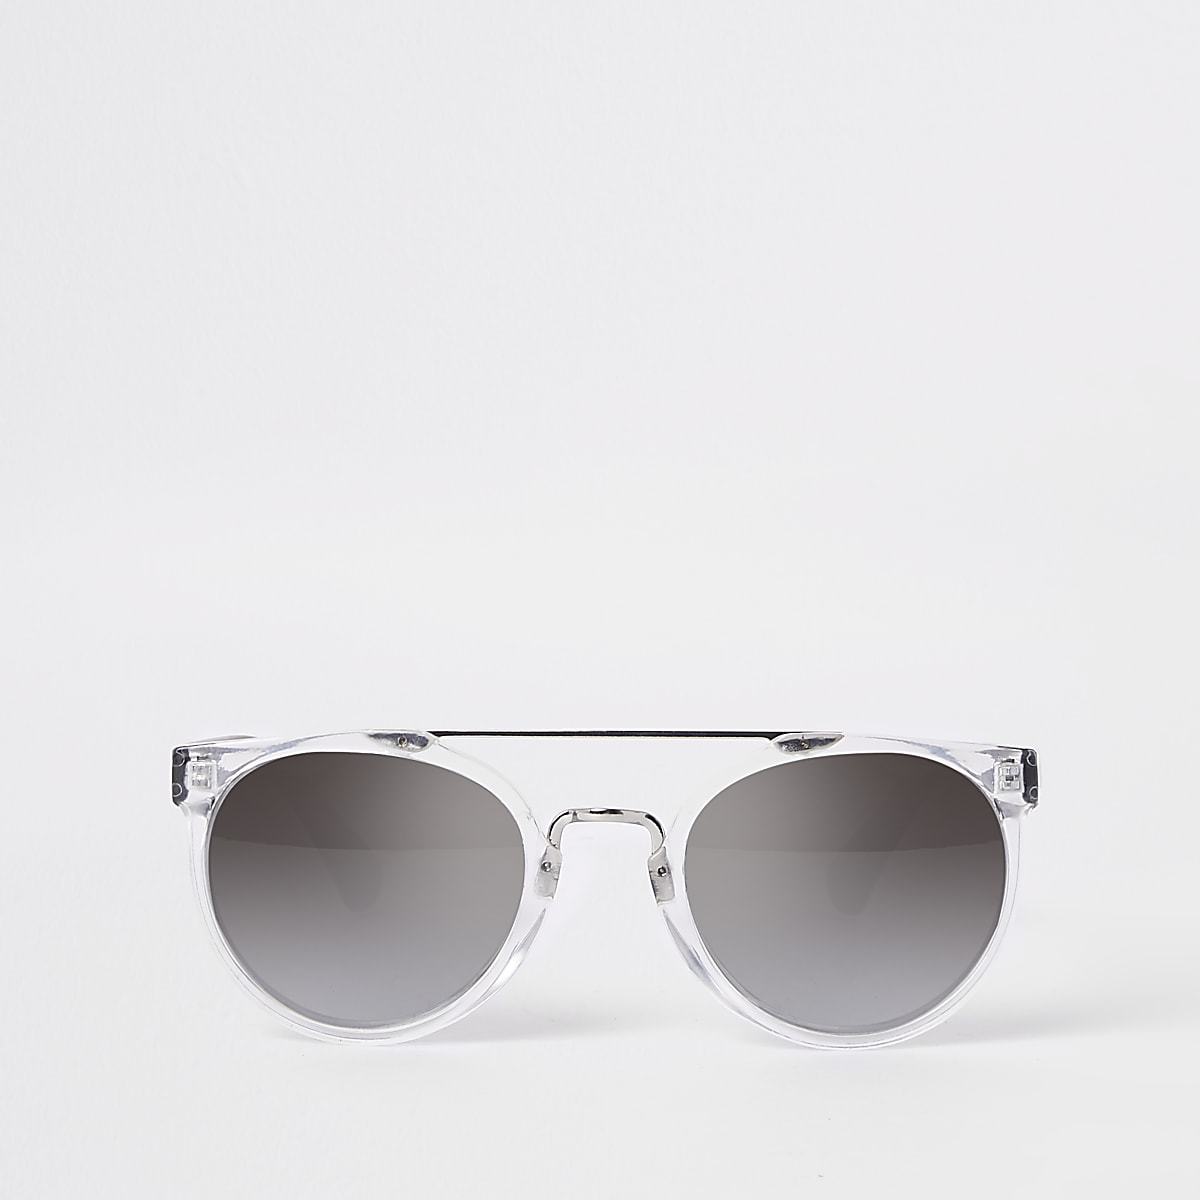 Boys silver retro sunglasses